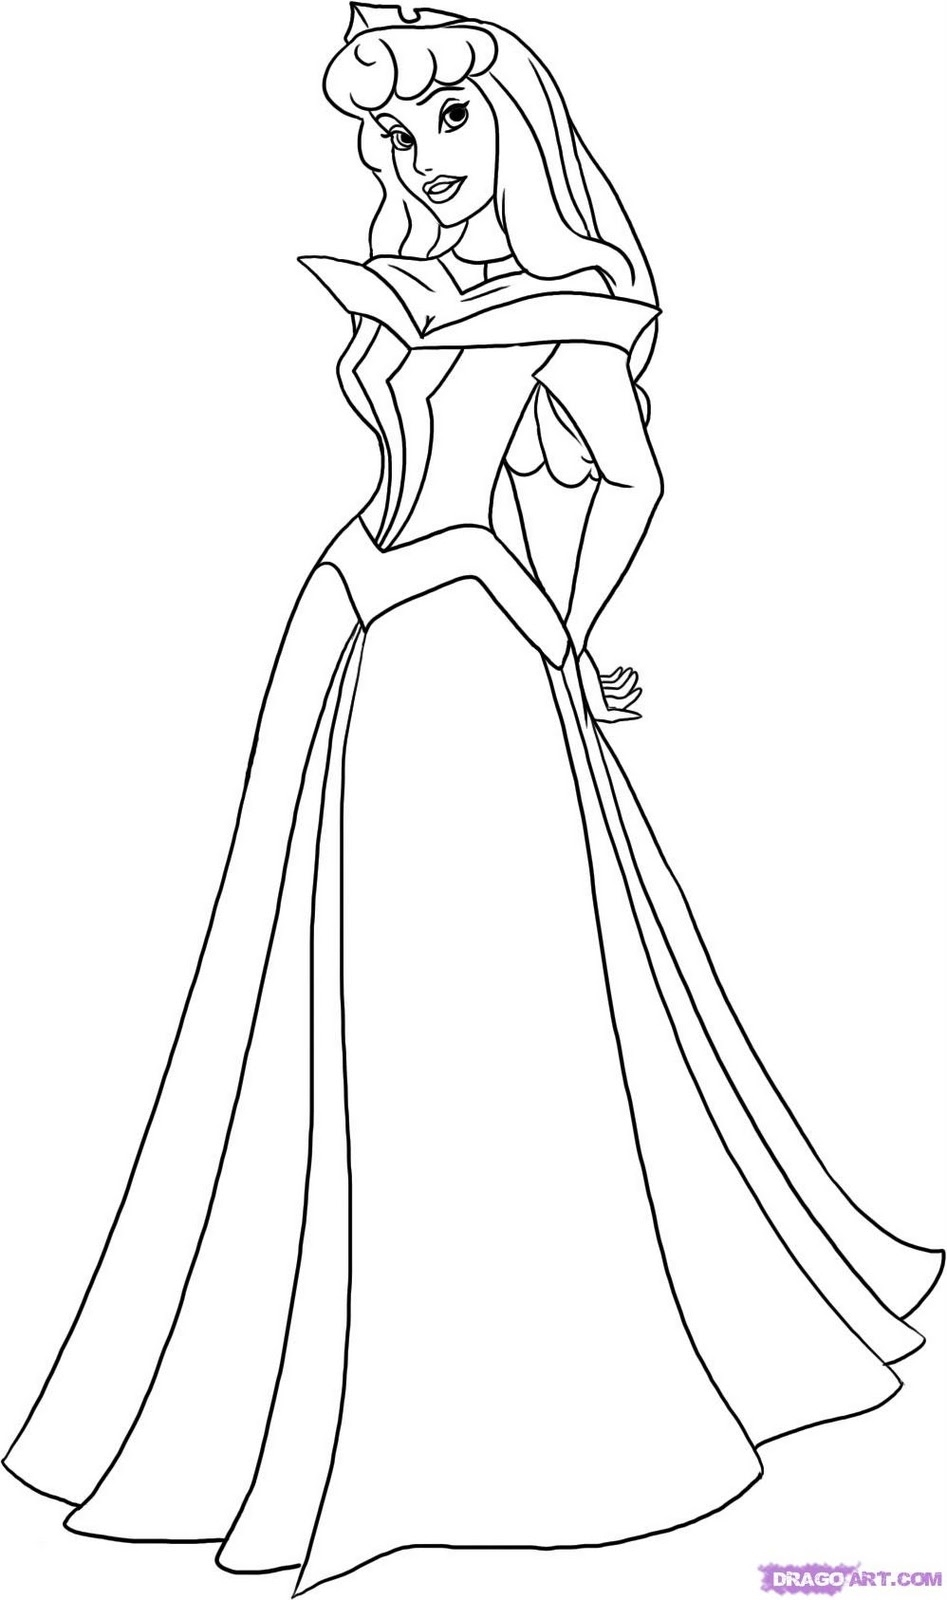 24 princess aurora coloring page printable free coloring pages